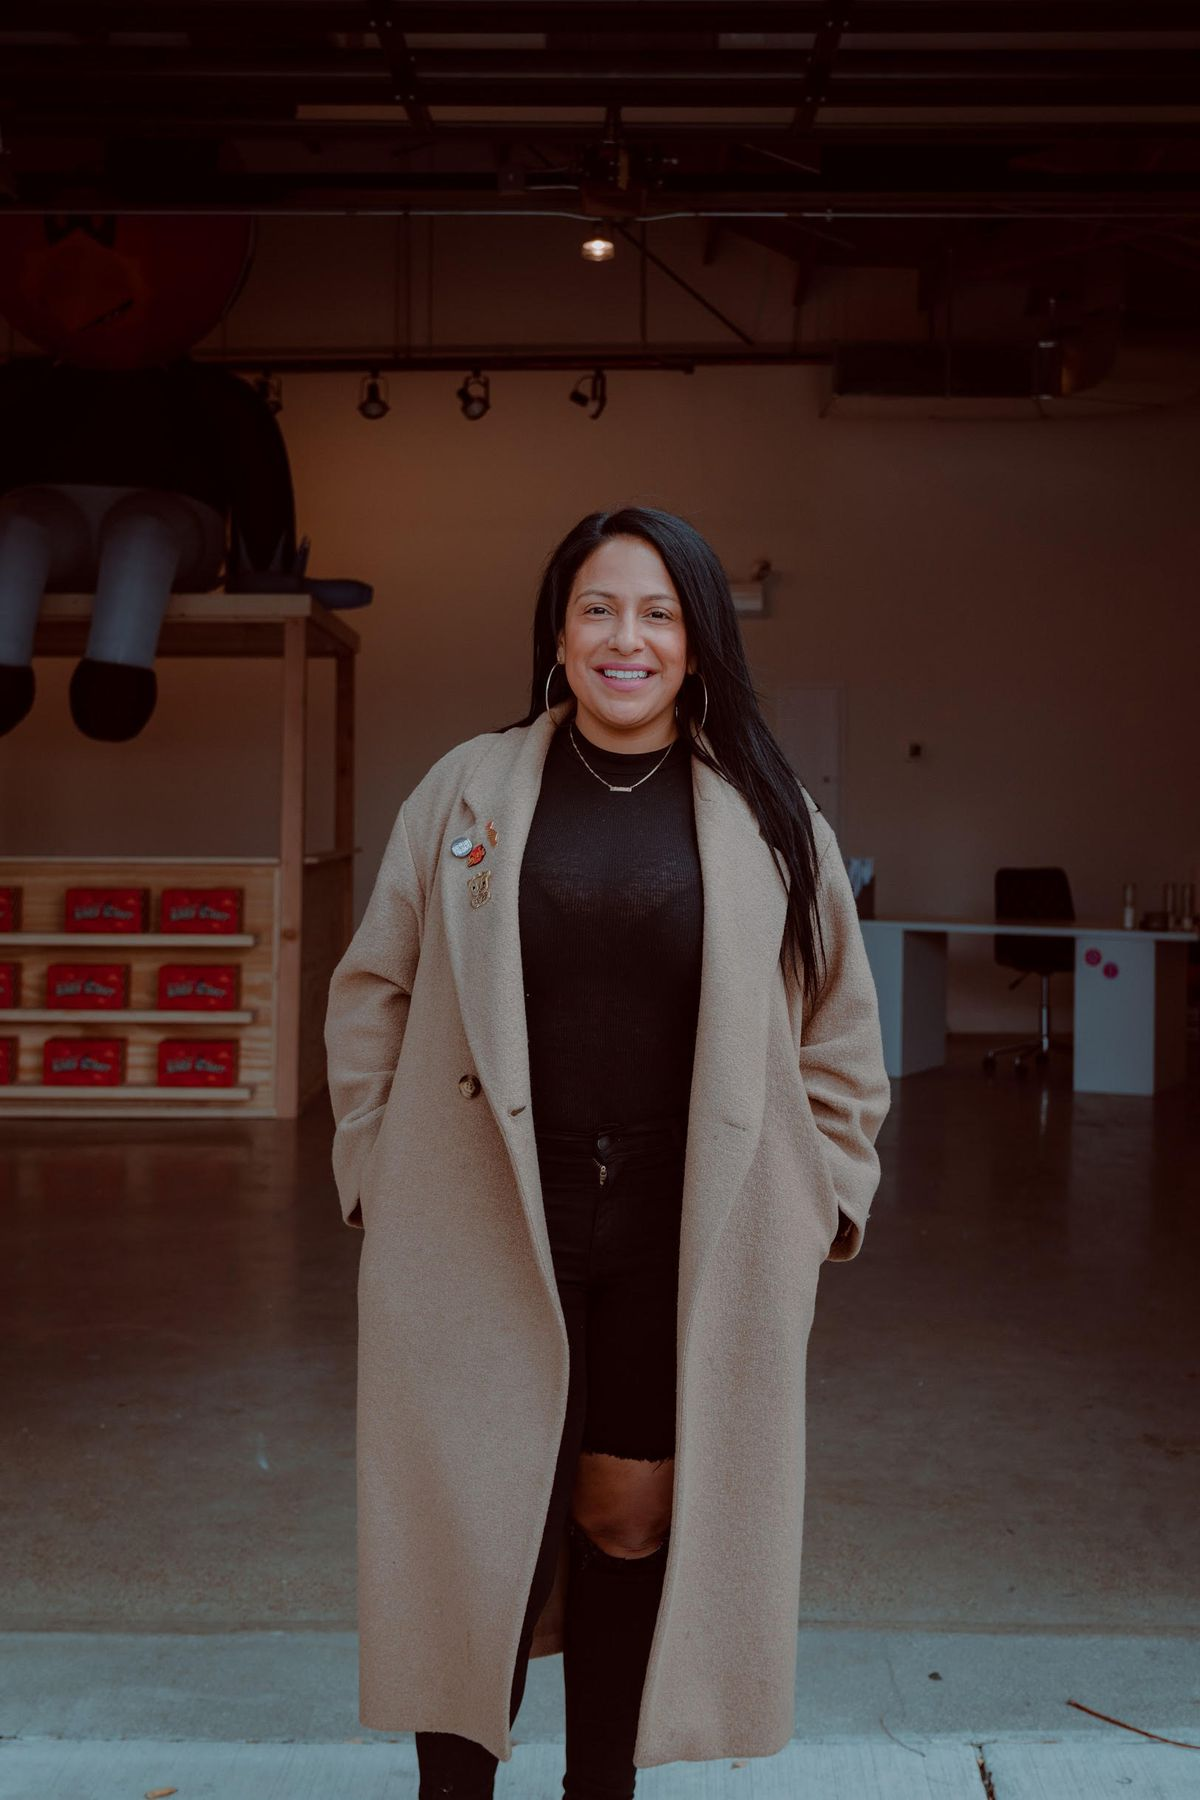 Delilah Martinez, owner of the Vault Gallerie in Pilsen and a leader of the Mural Movement.